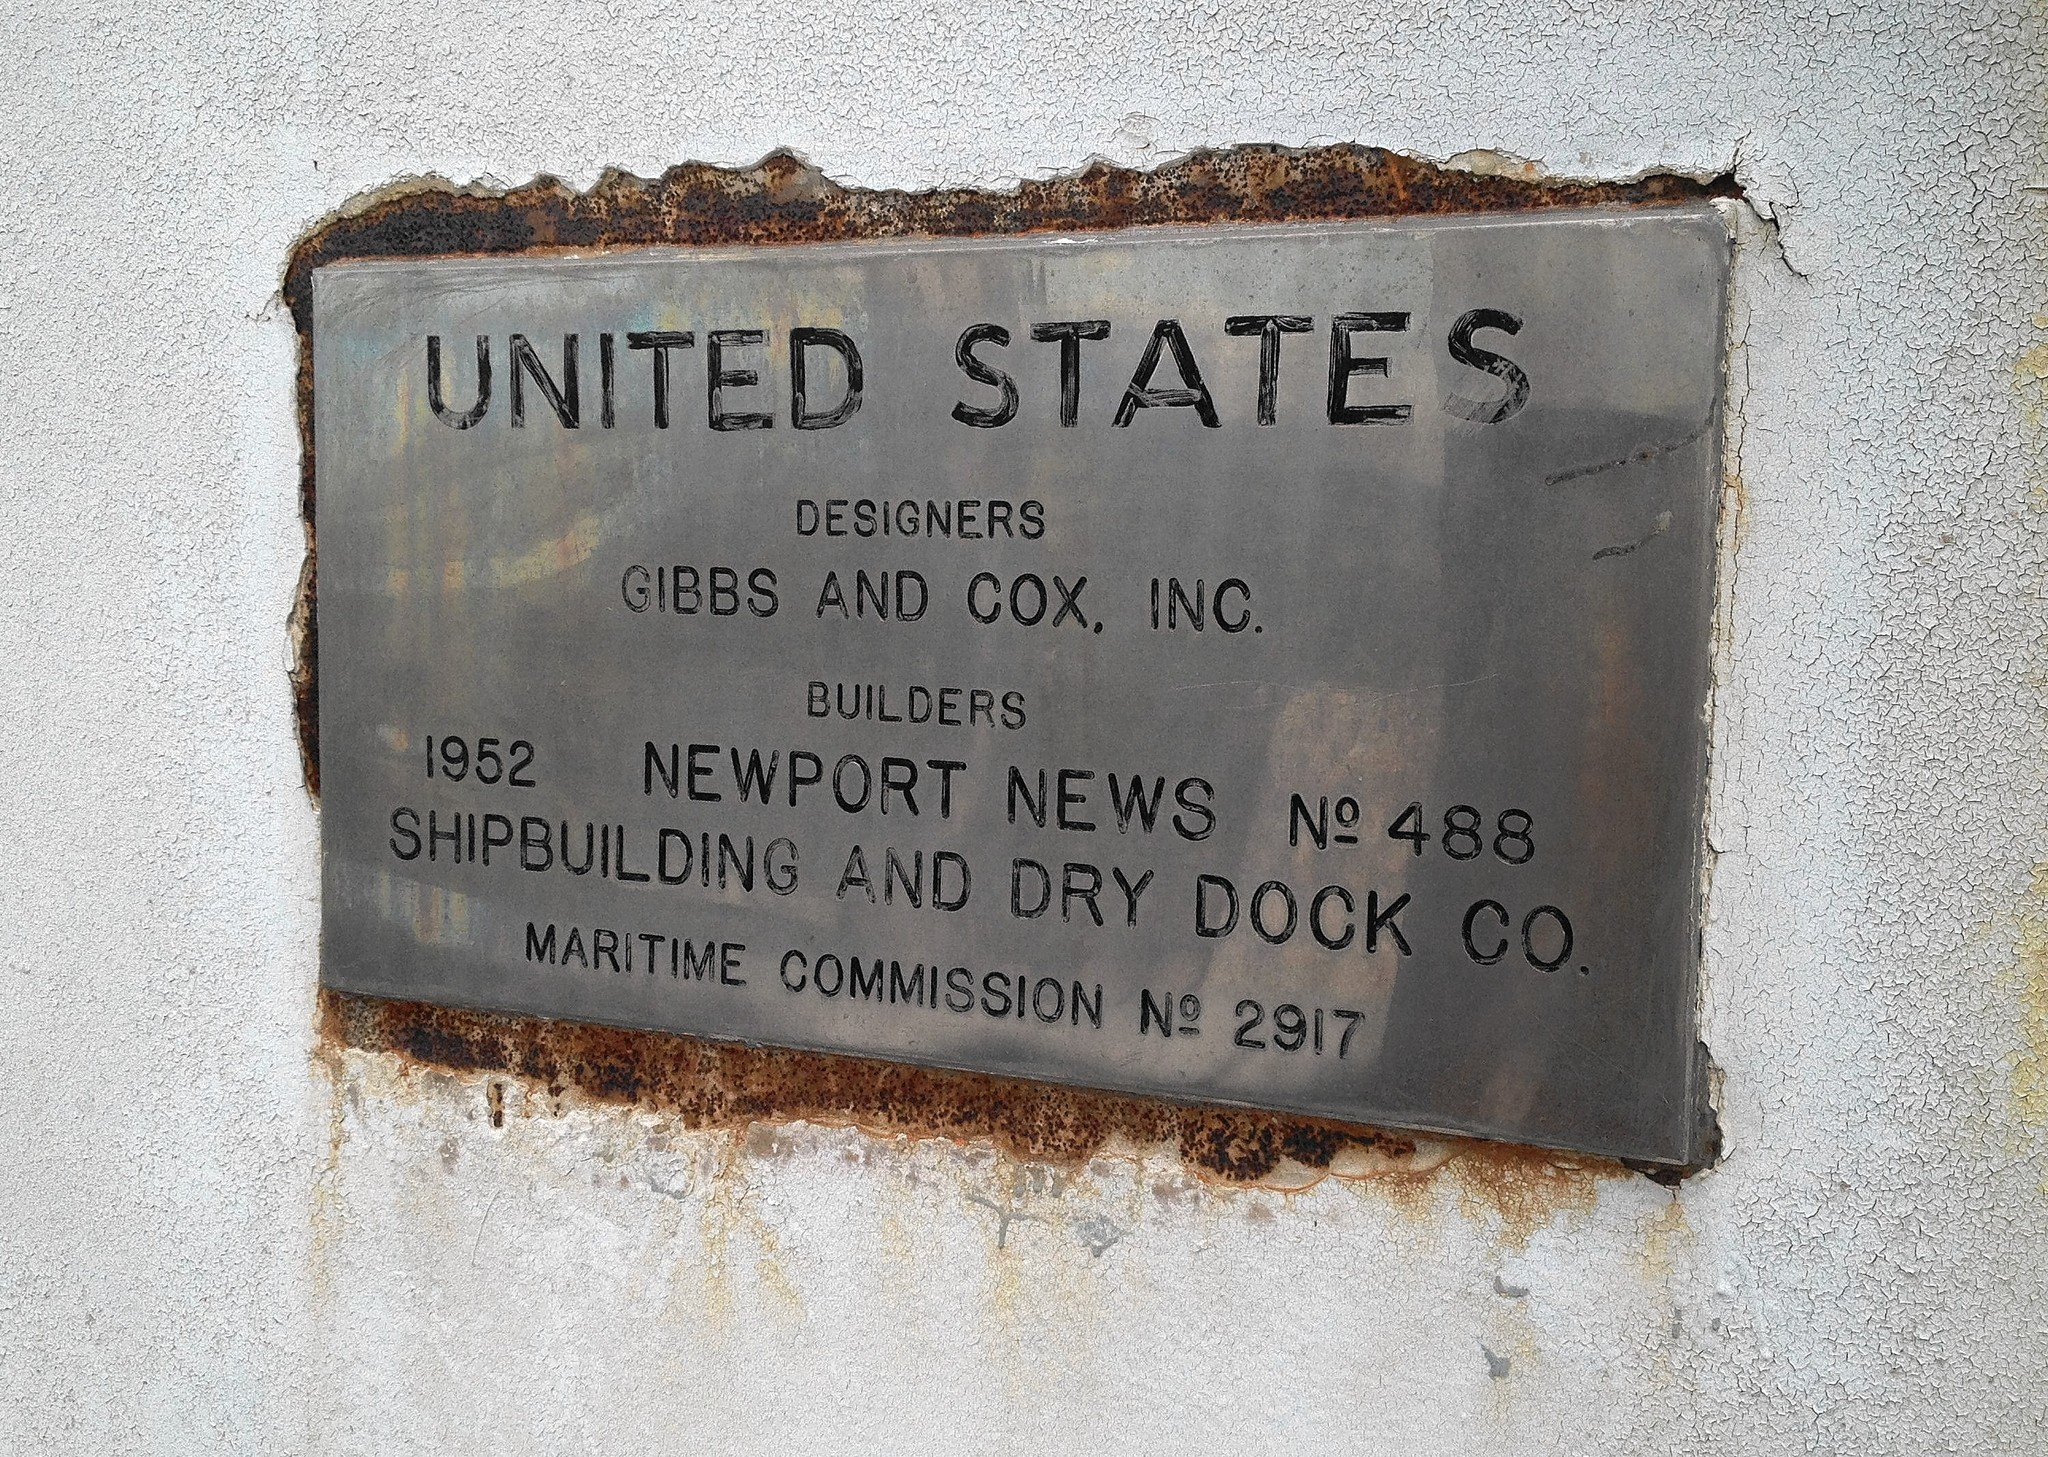 A plaque on the ship displays the Newport News shipyard's role as builder of the United States, which still holds the record among ocean liners for the fastest journey across the Atlantic.